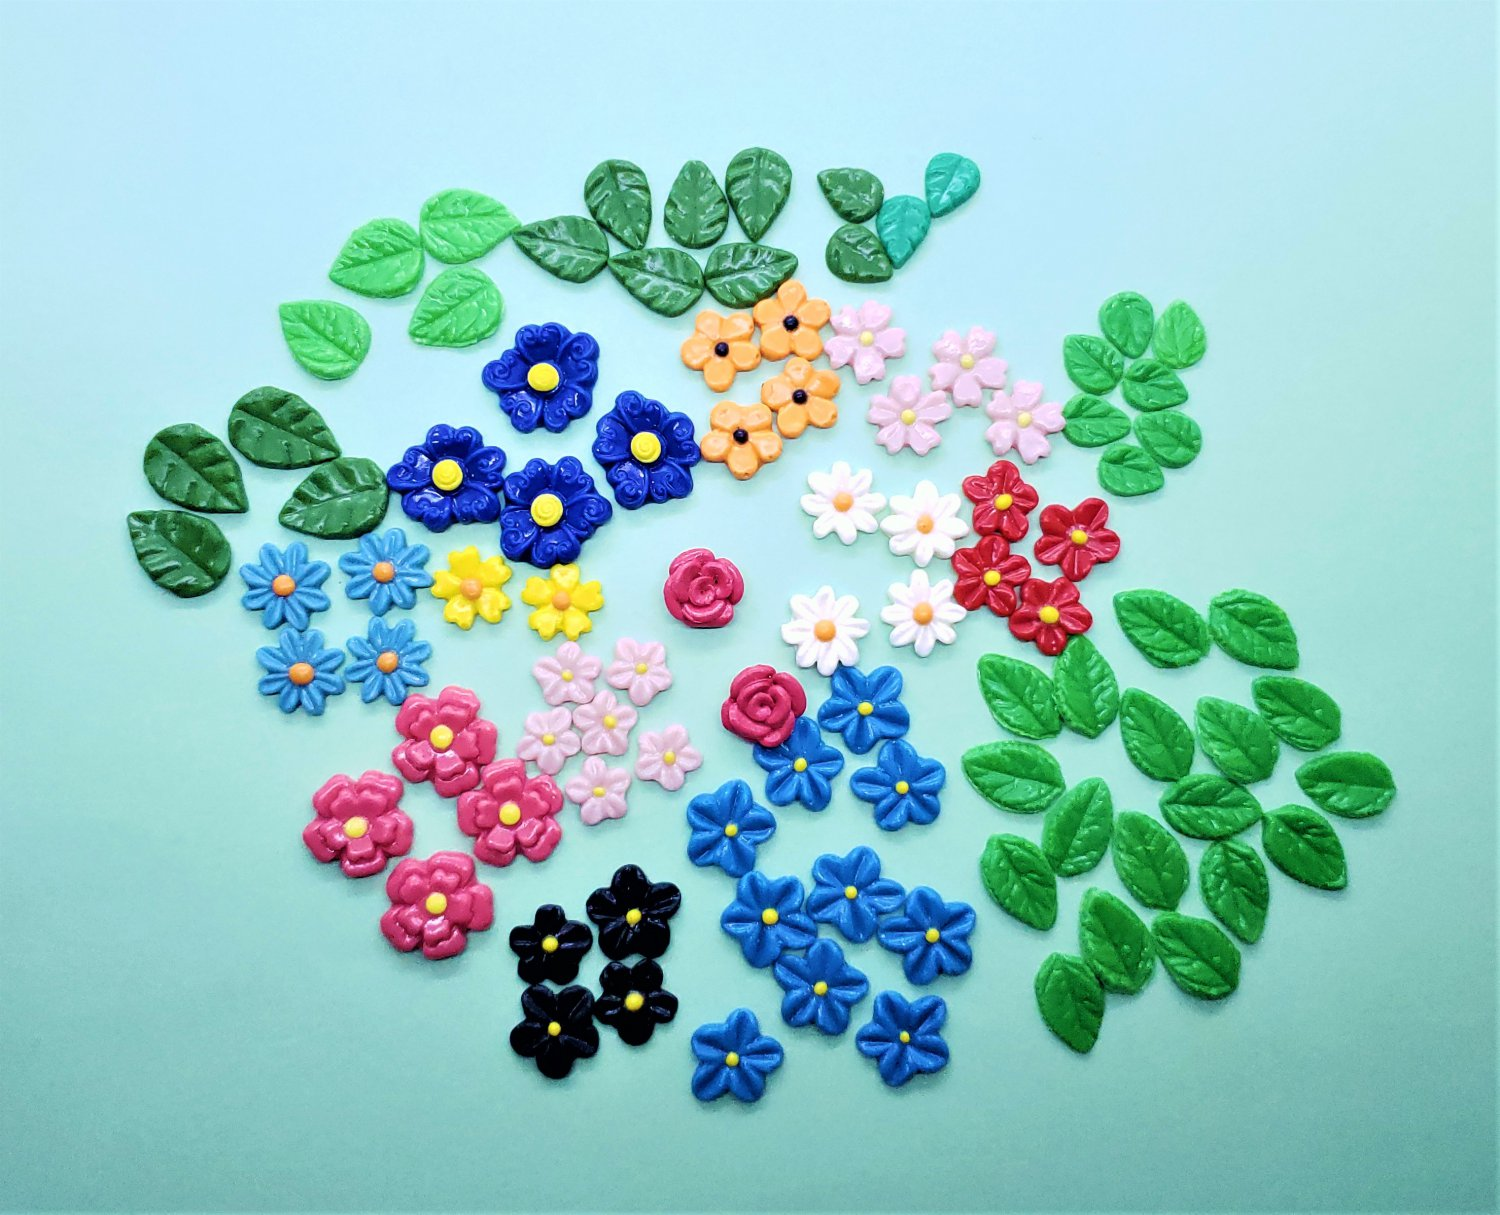 CLEARANCE Flowers and Leaves Set with 78 pieces - Cold Porcelain Clay